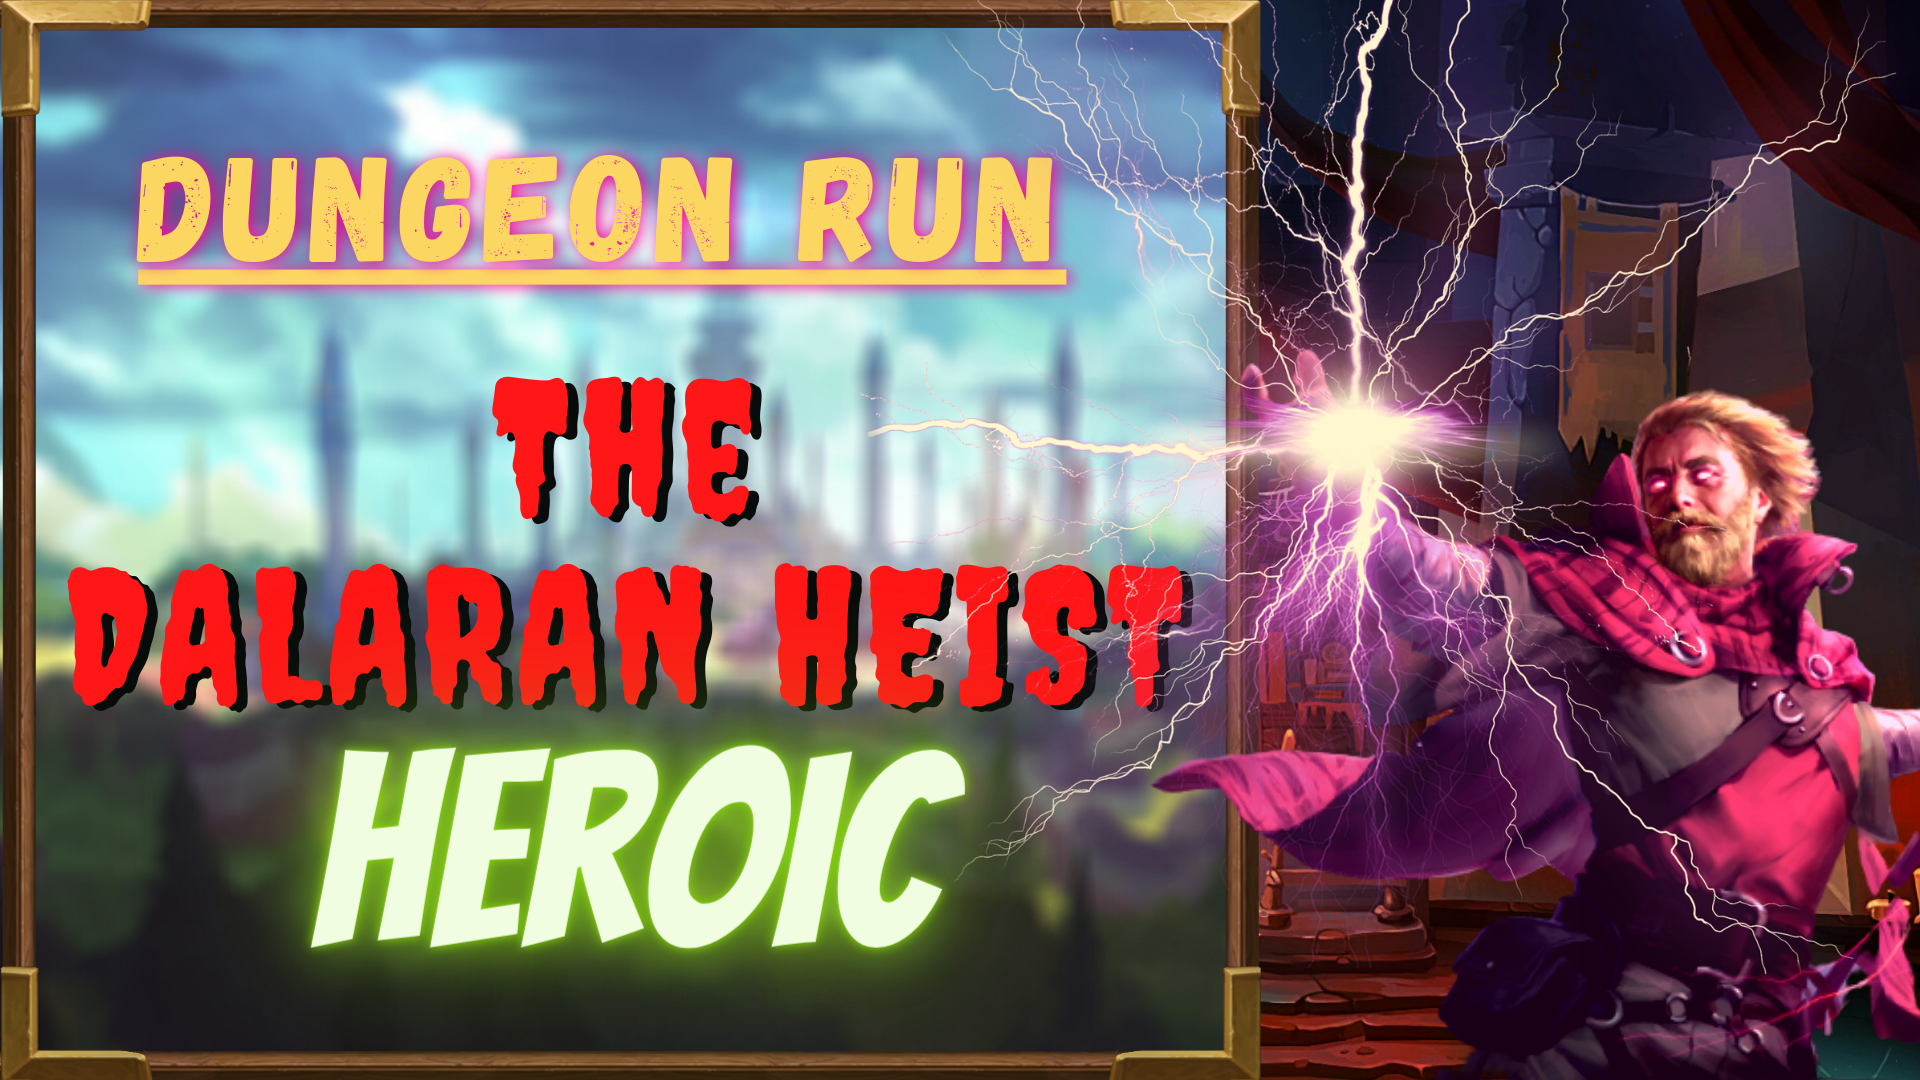 DUNGEON RUN: THE DALARAN HEIST - HEROIC Zafari - e2p.com